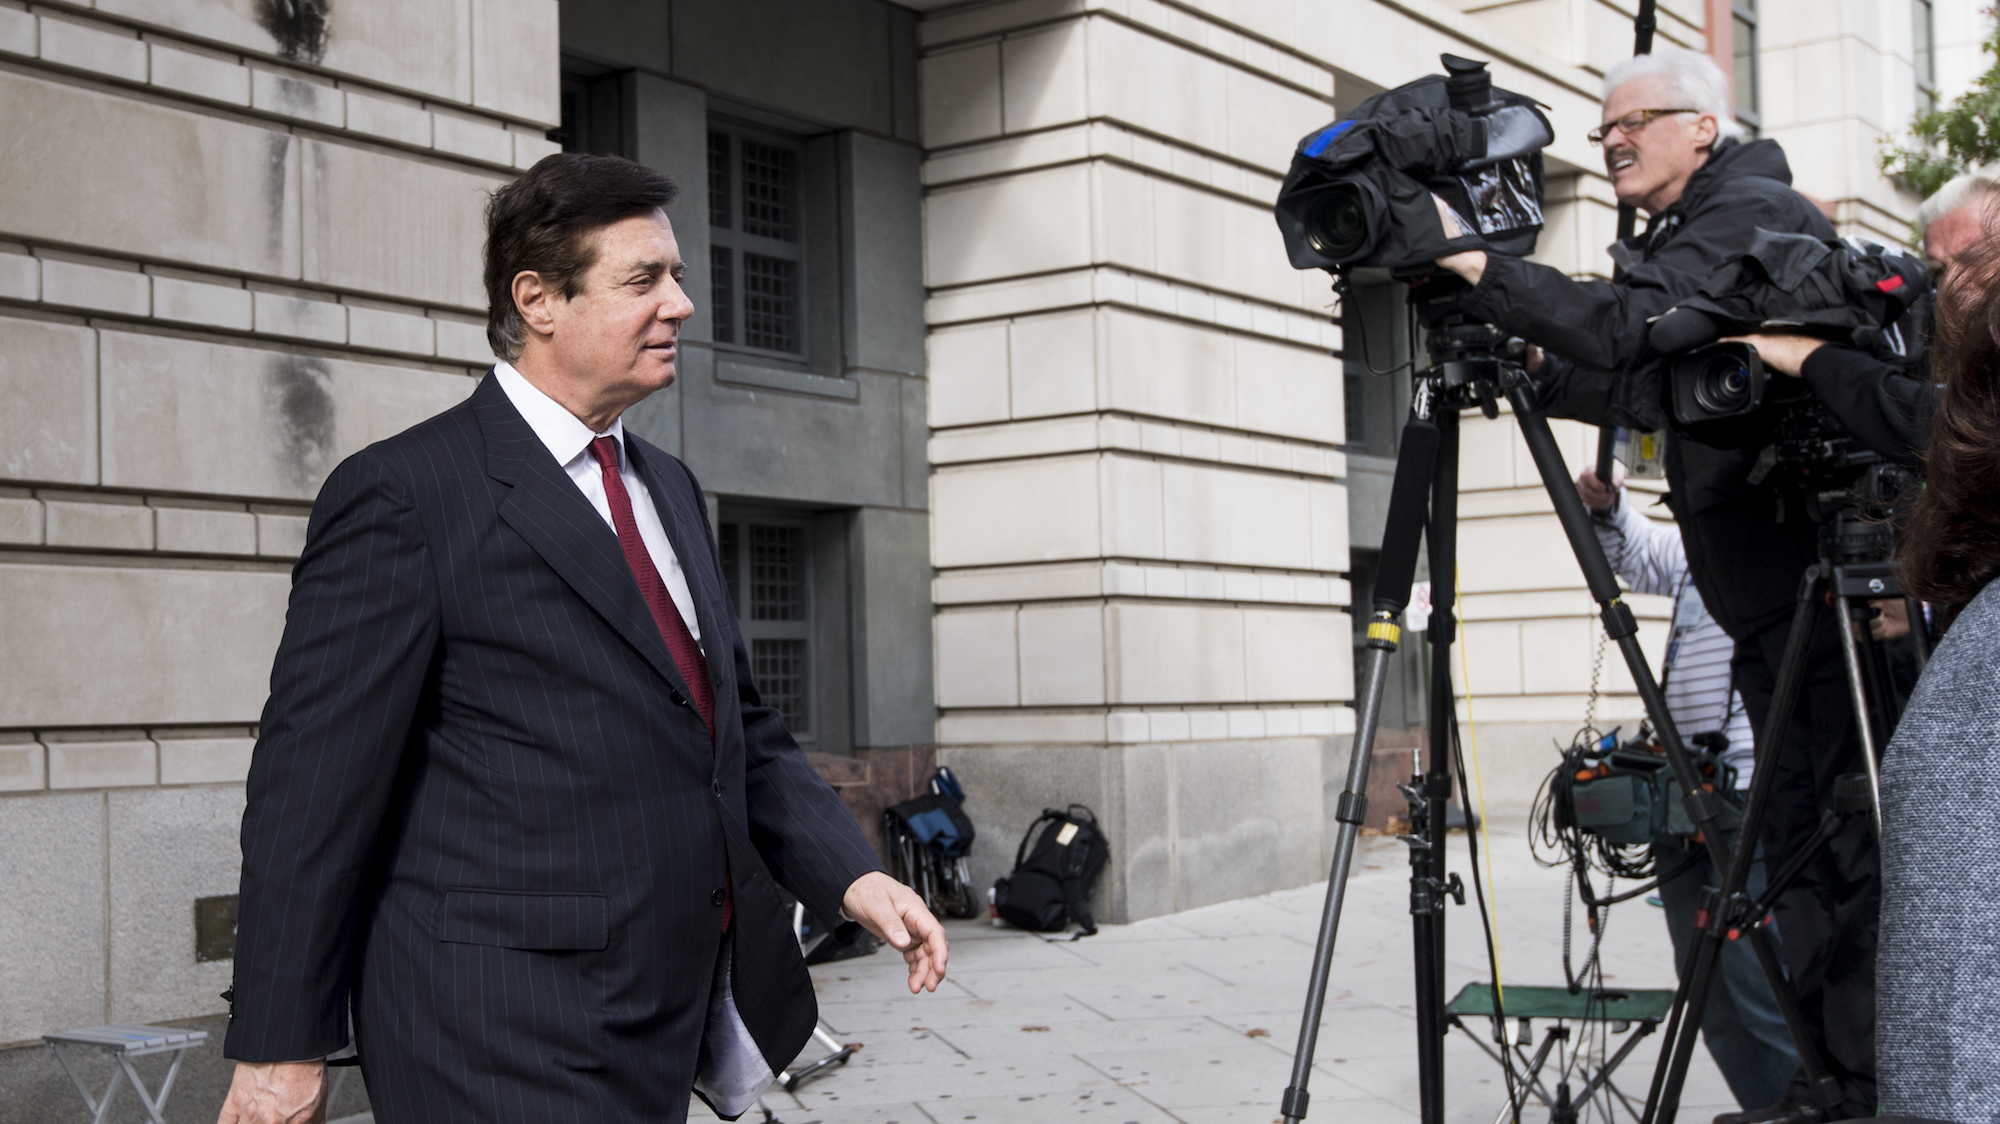 Paul Manafort Getting The VIP Treatment In Virginia Jail